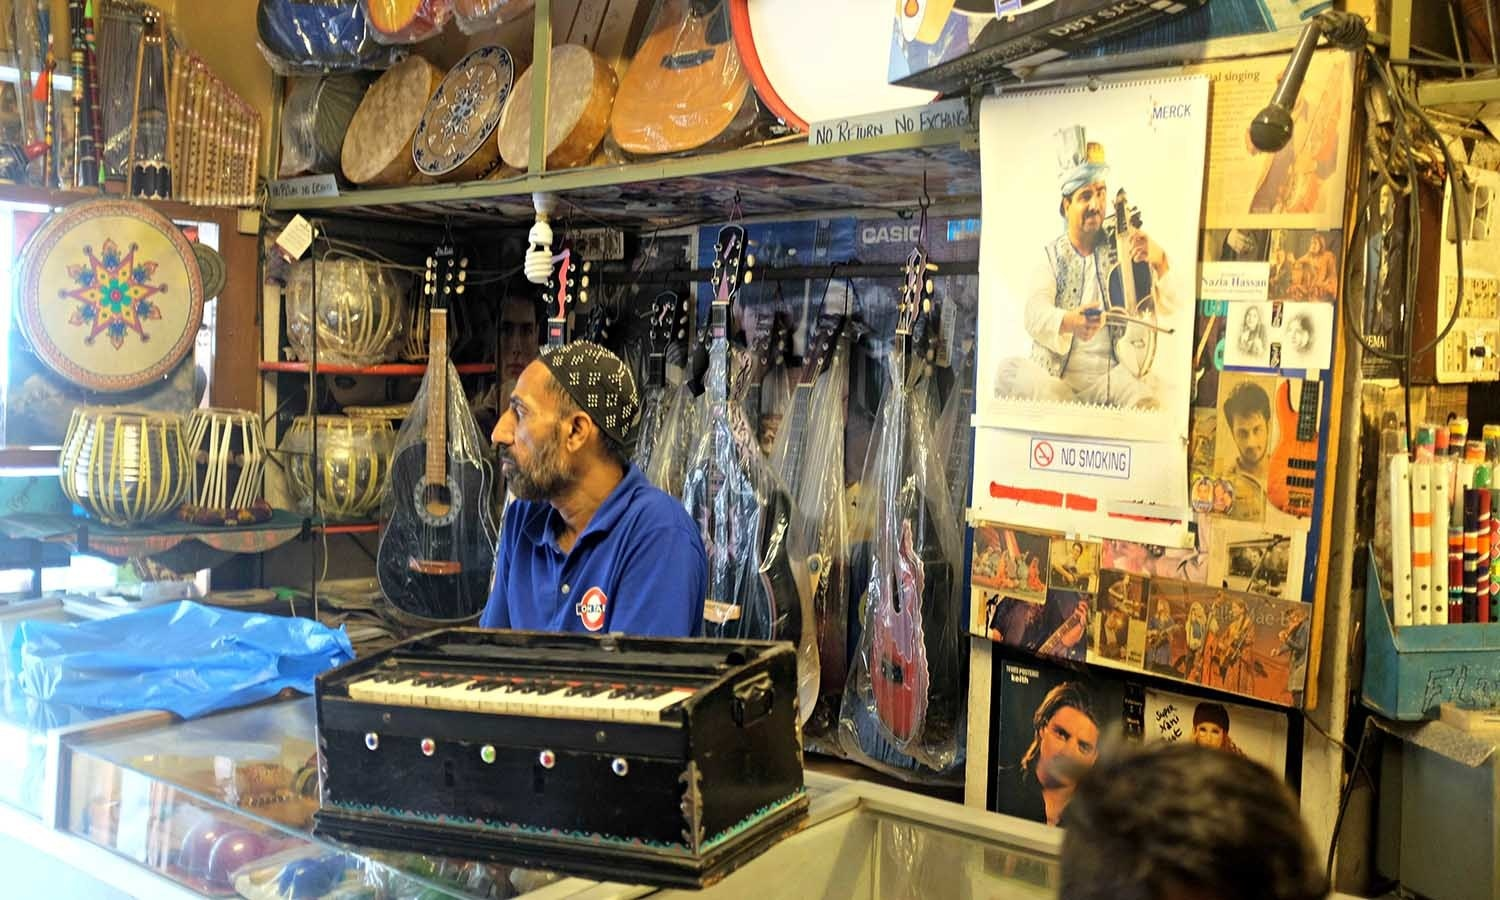 Sohail's music shop has a wide range of musical instruments.